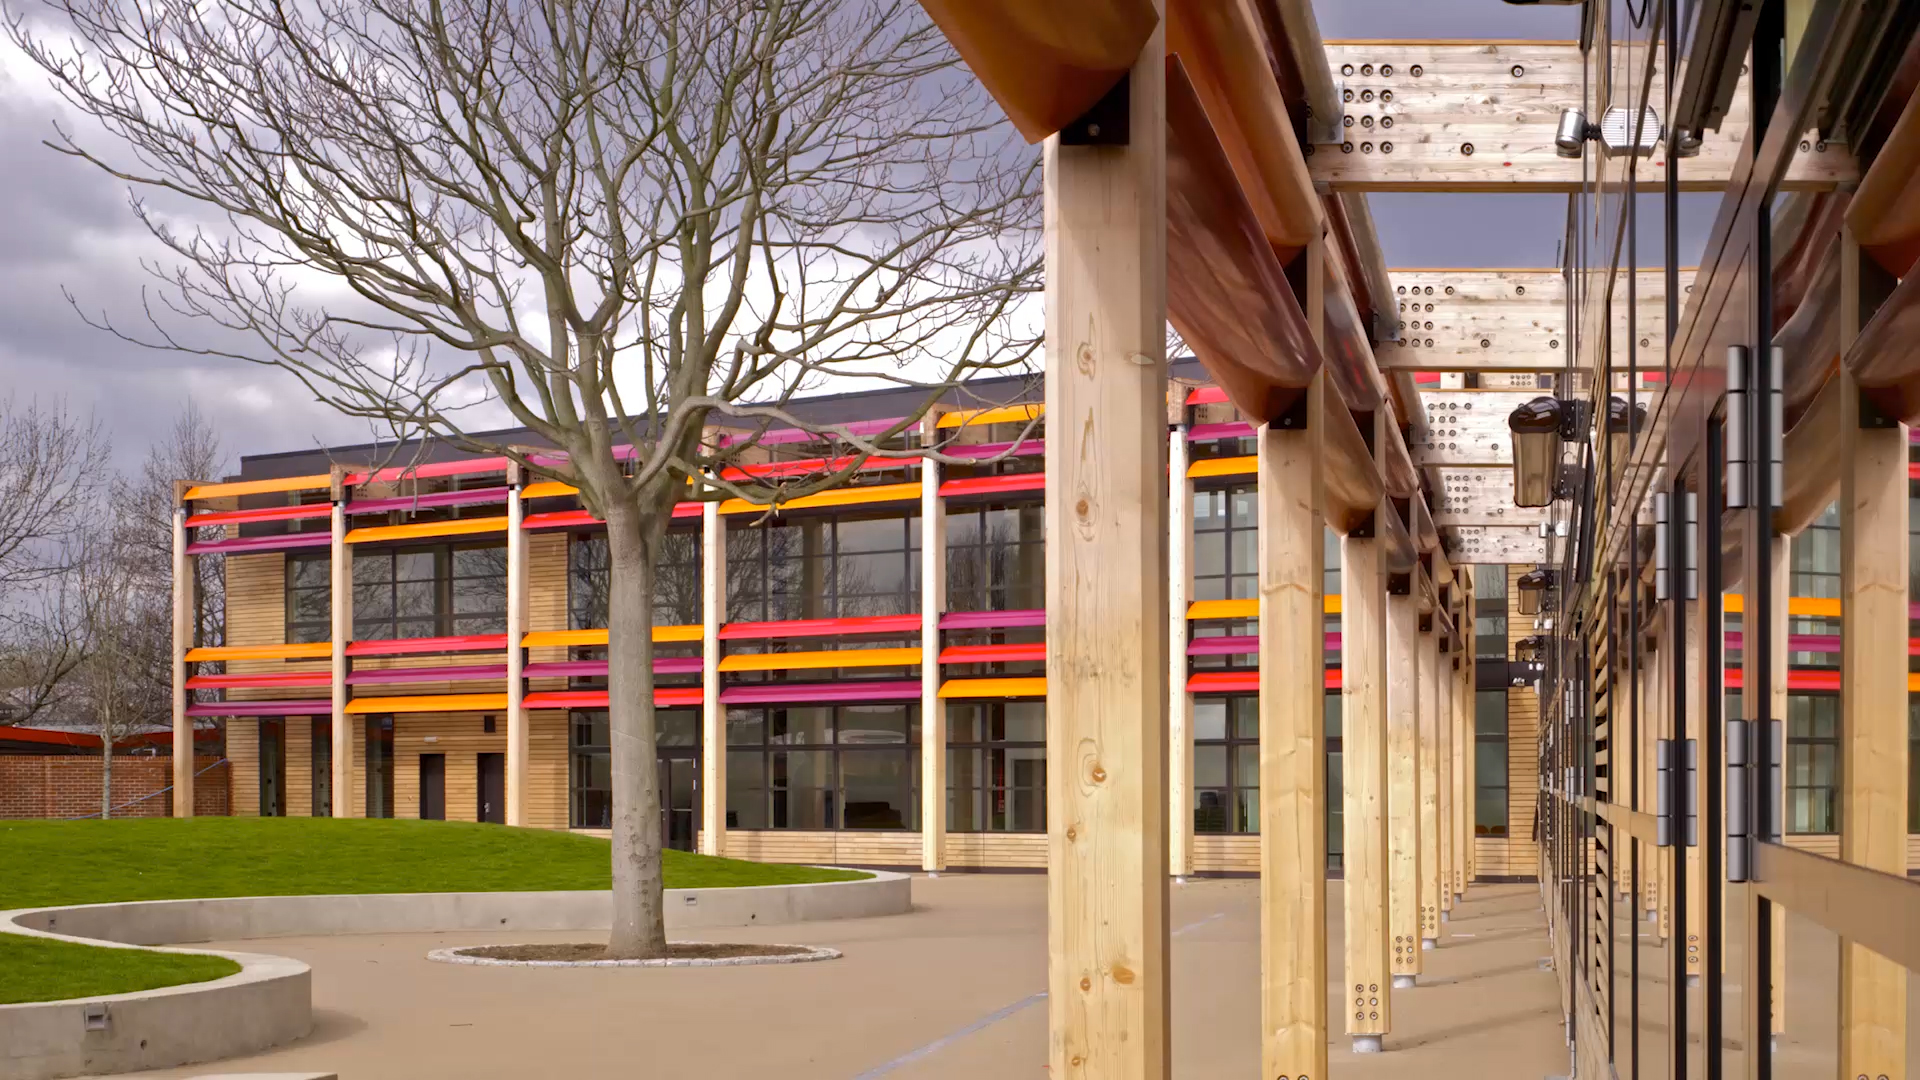 Michael Tippet School by Marks Barfield Architects